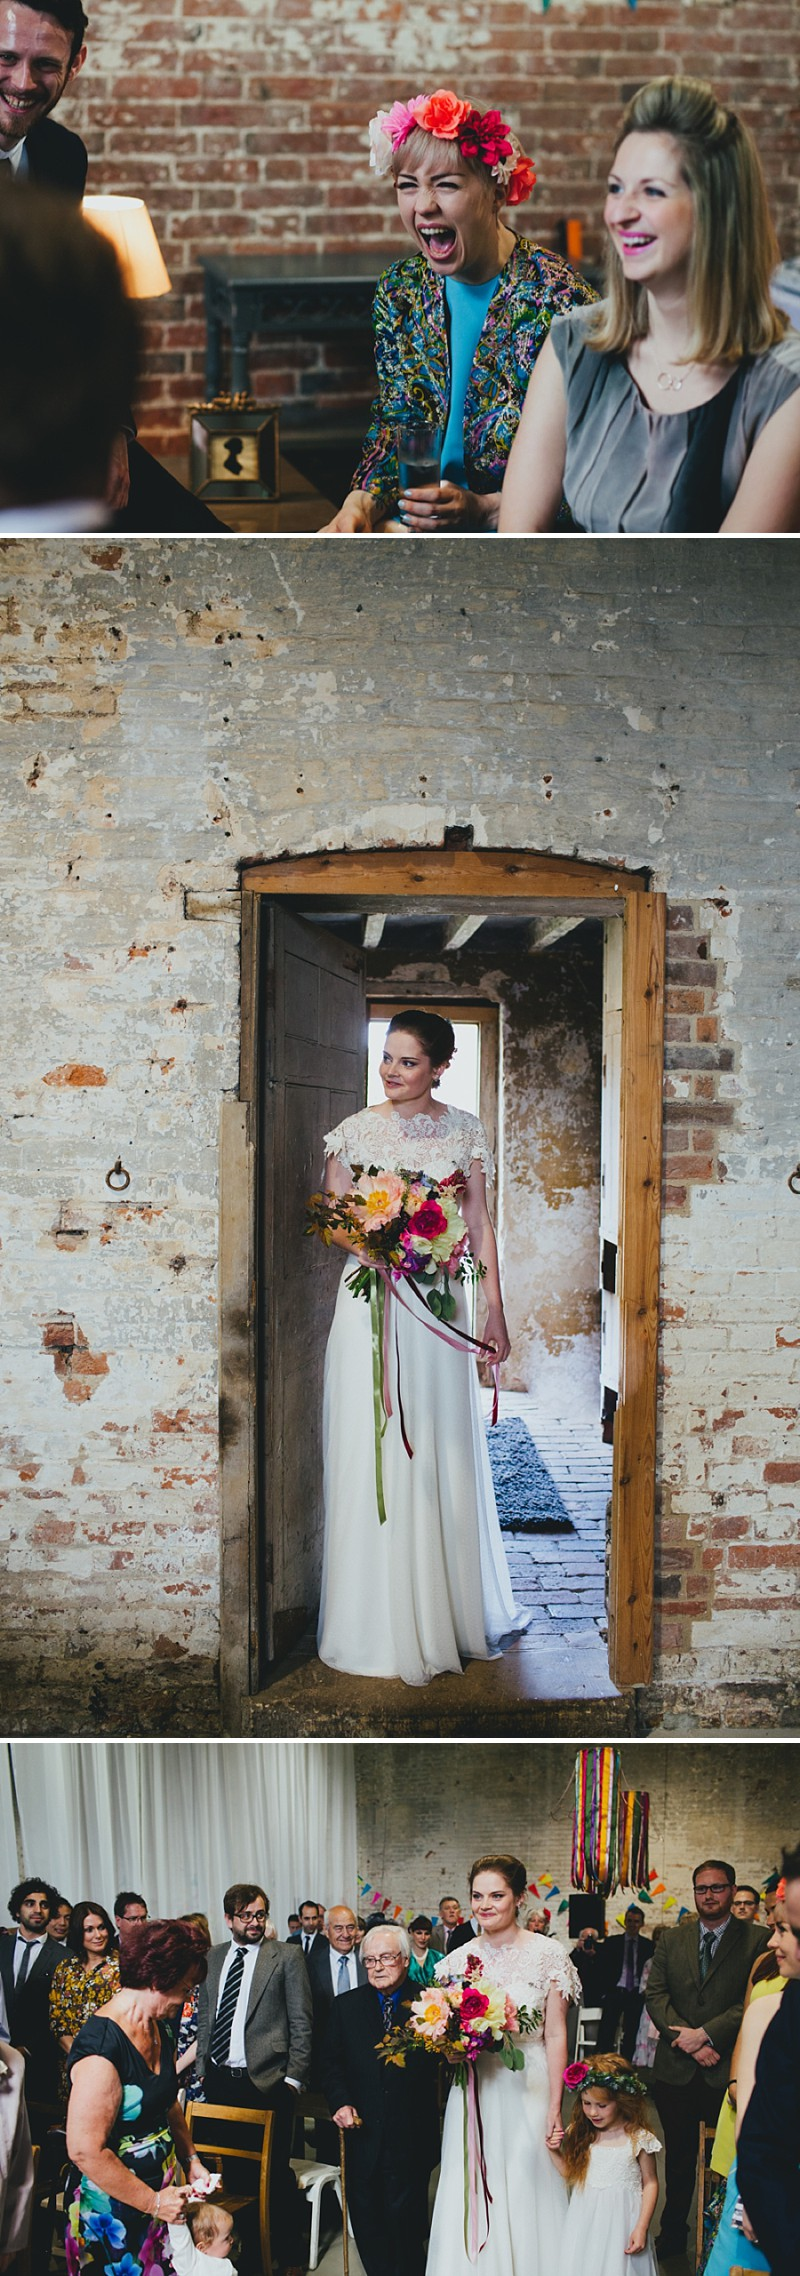 An alternative rock n roll wedding at Calke Abbey in Derbyshire with a bride in a Kula Tsurdiu gown and the most beautiful flowers by Honeysuckle and Castle_0207